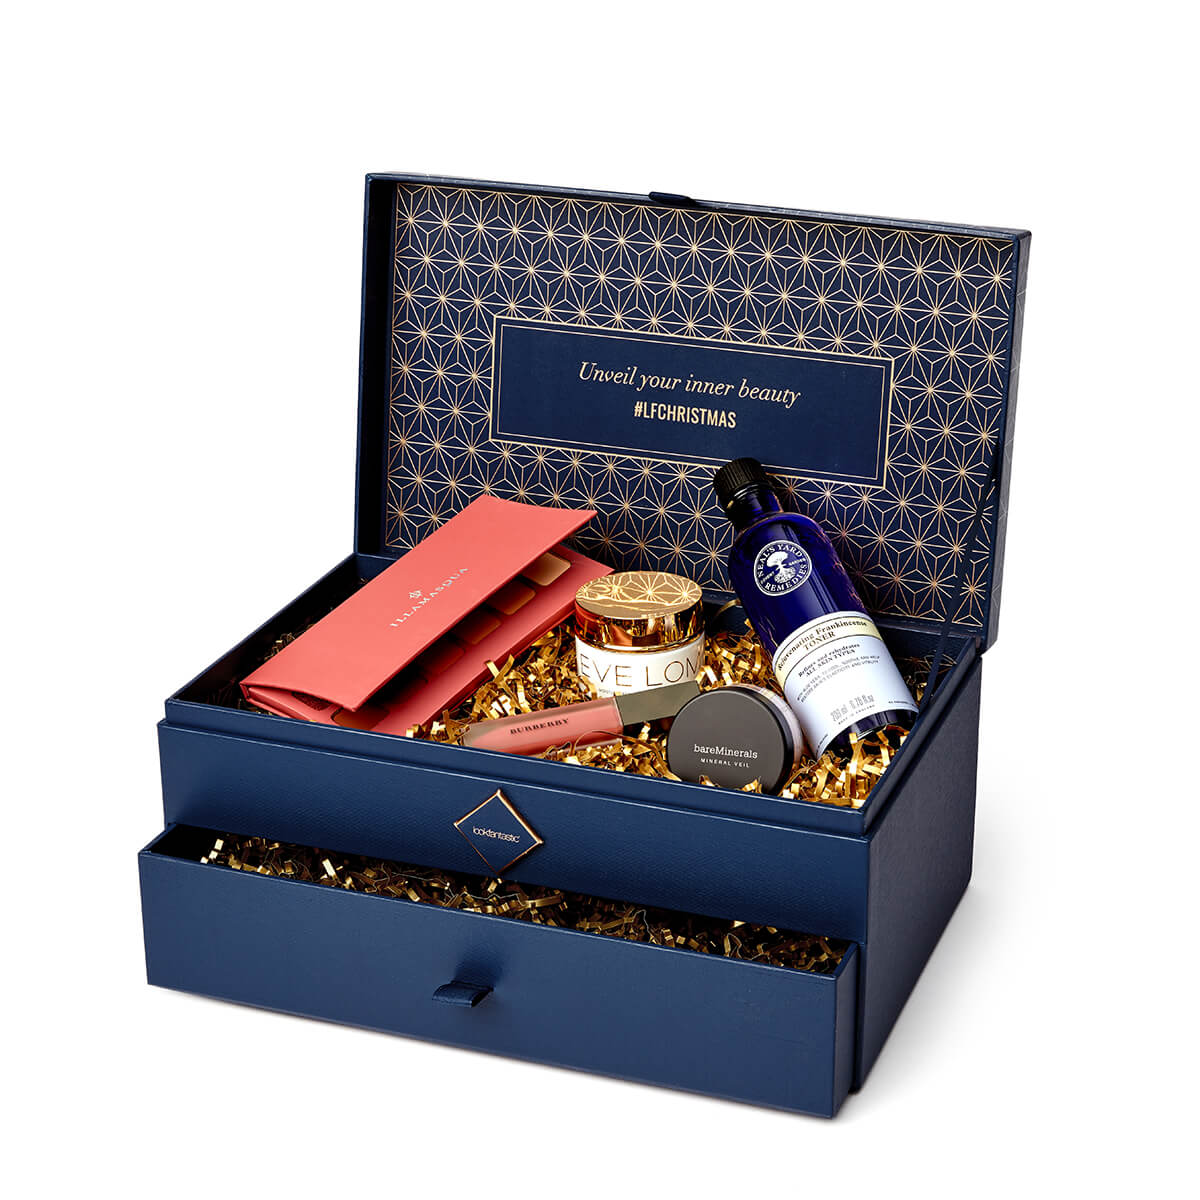 lookfantastic Beauty Chest (Worth over HK$3,600)